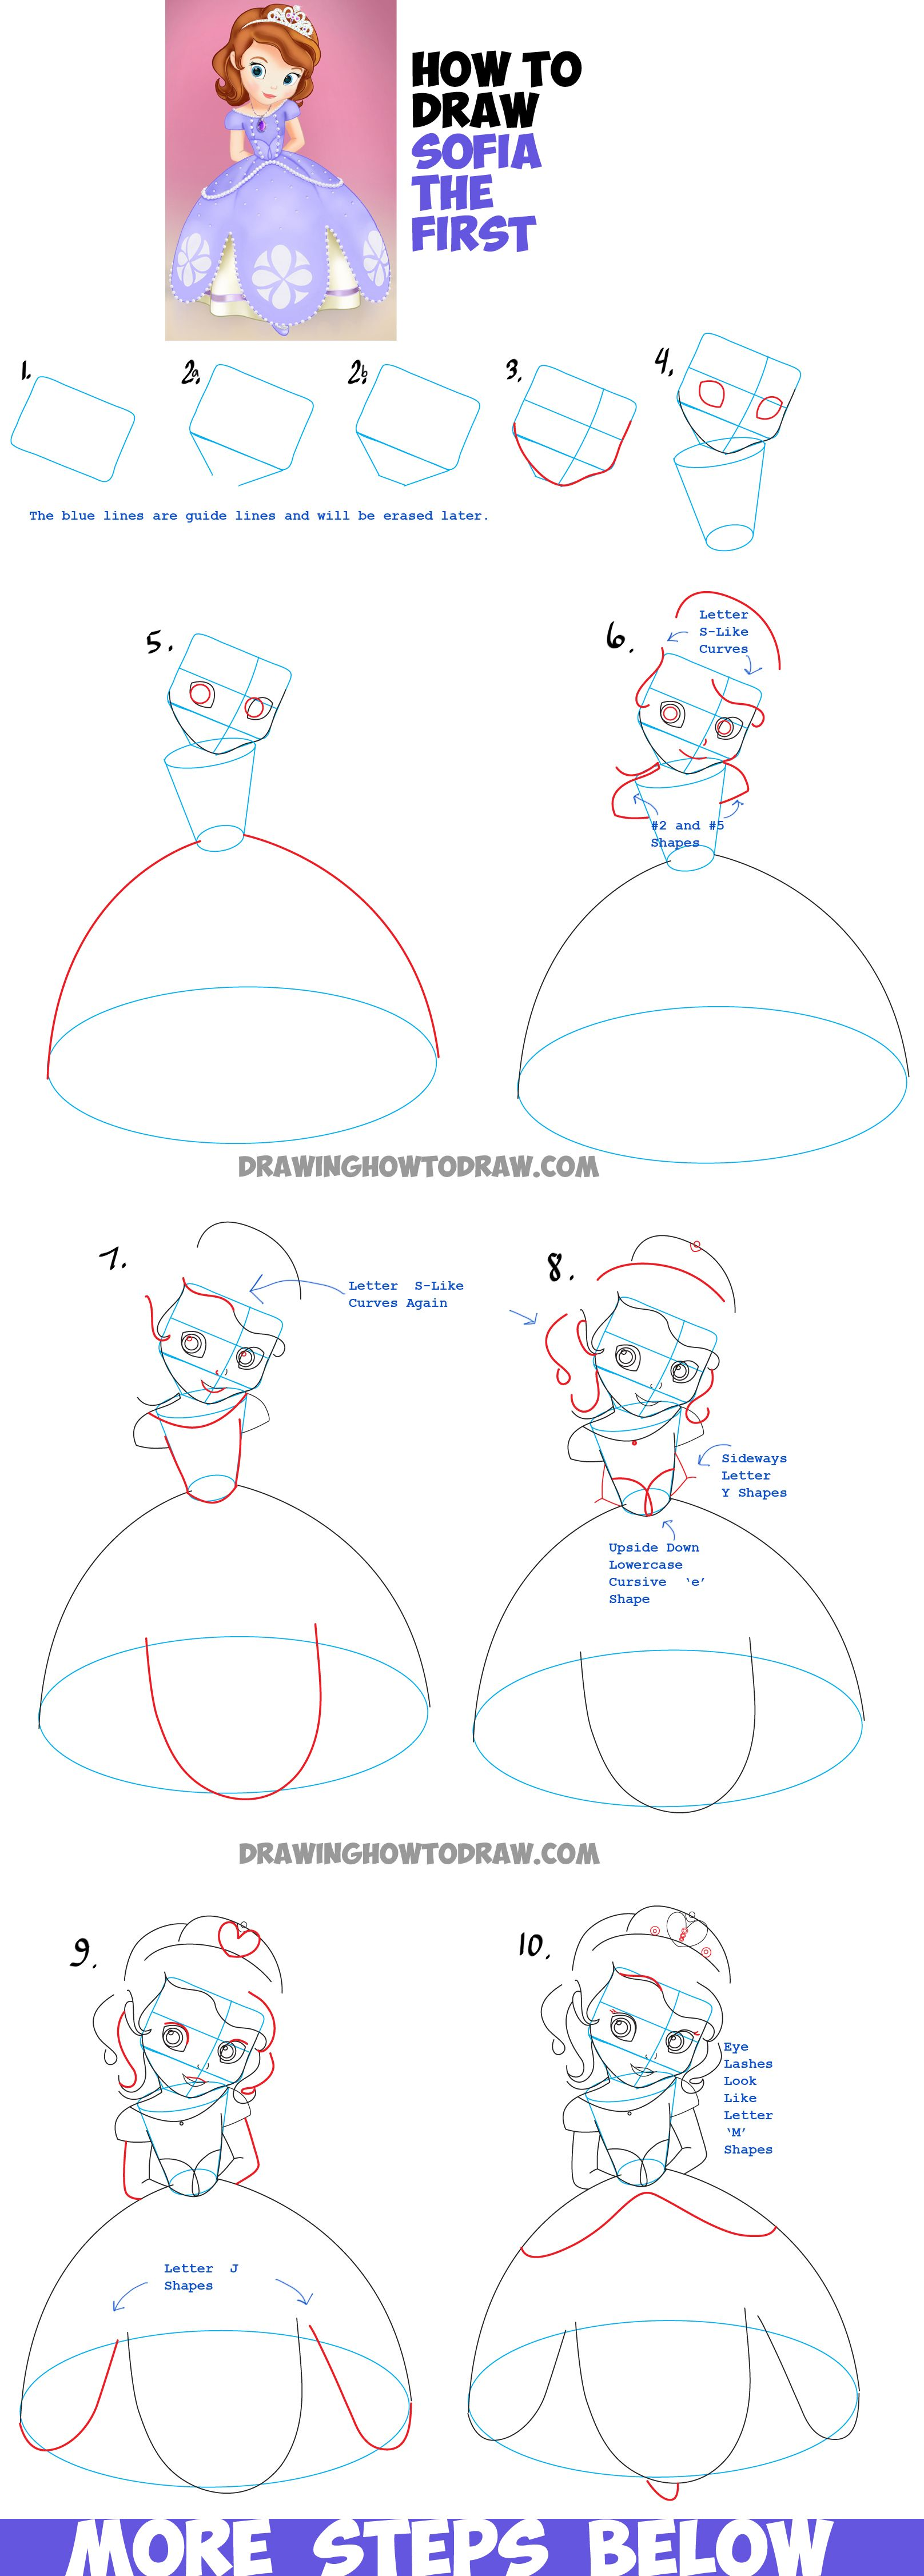 Character Design Tutorial Step By Step : How to draw sofia from the first easy step by